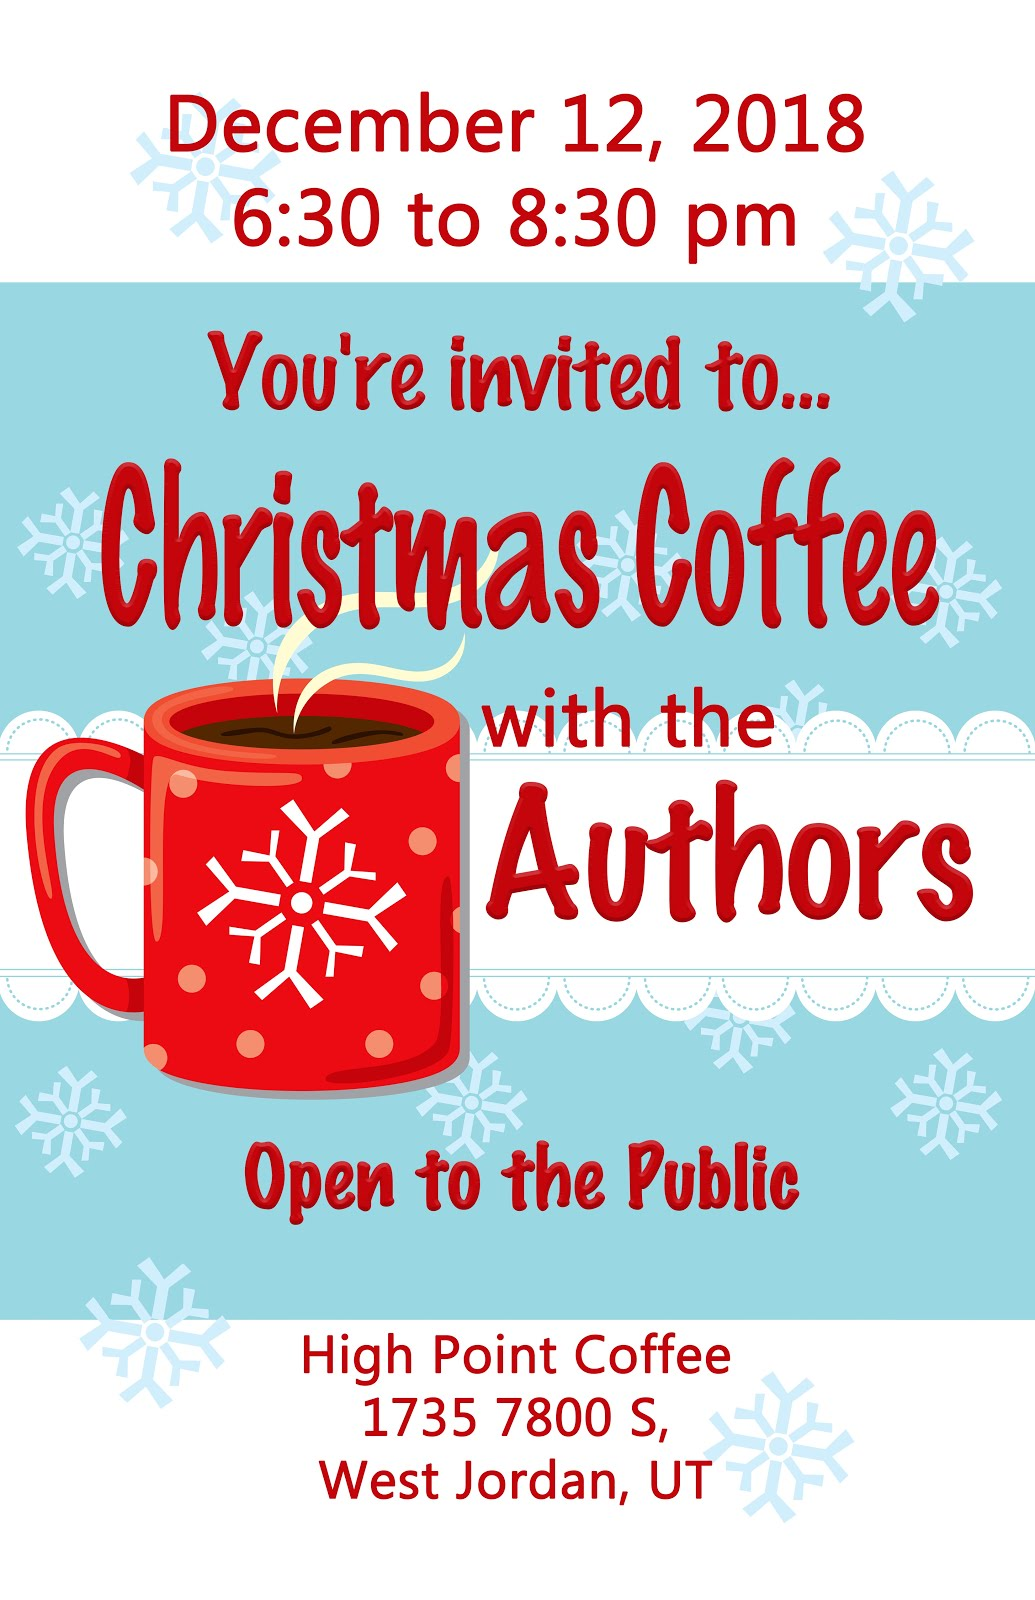 Christmas Coffee with Authors